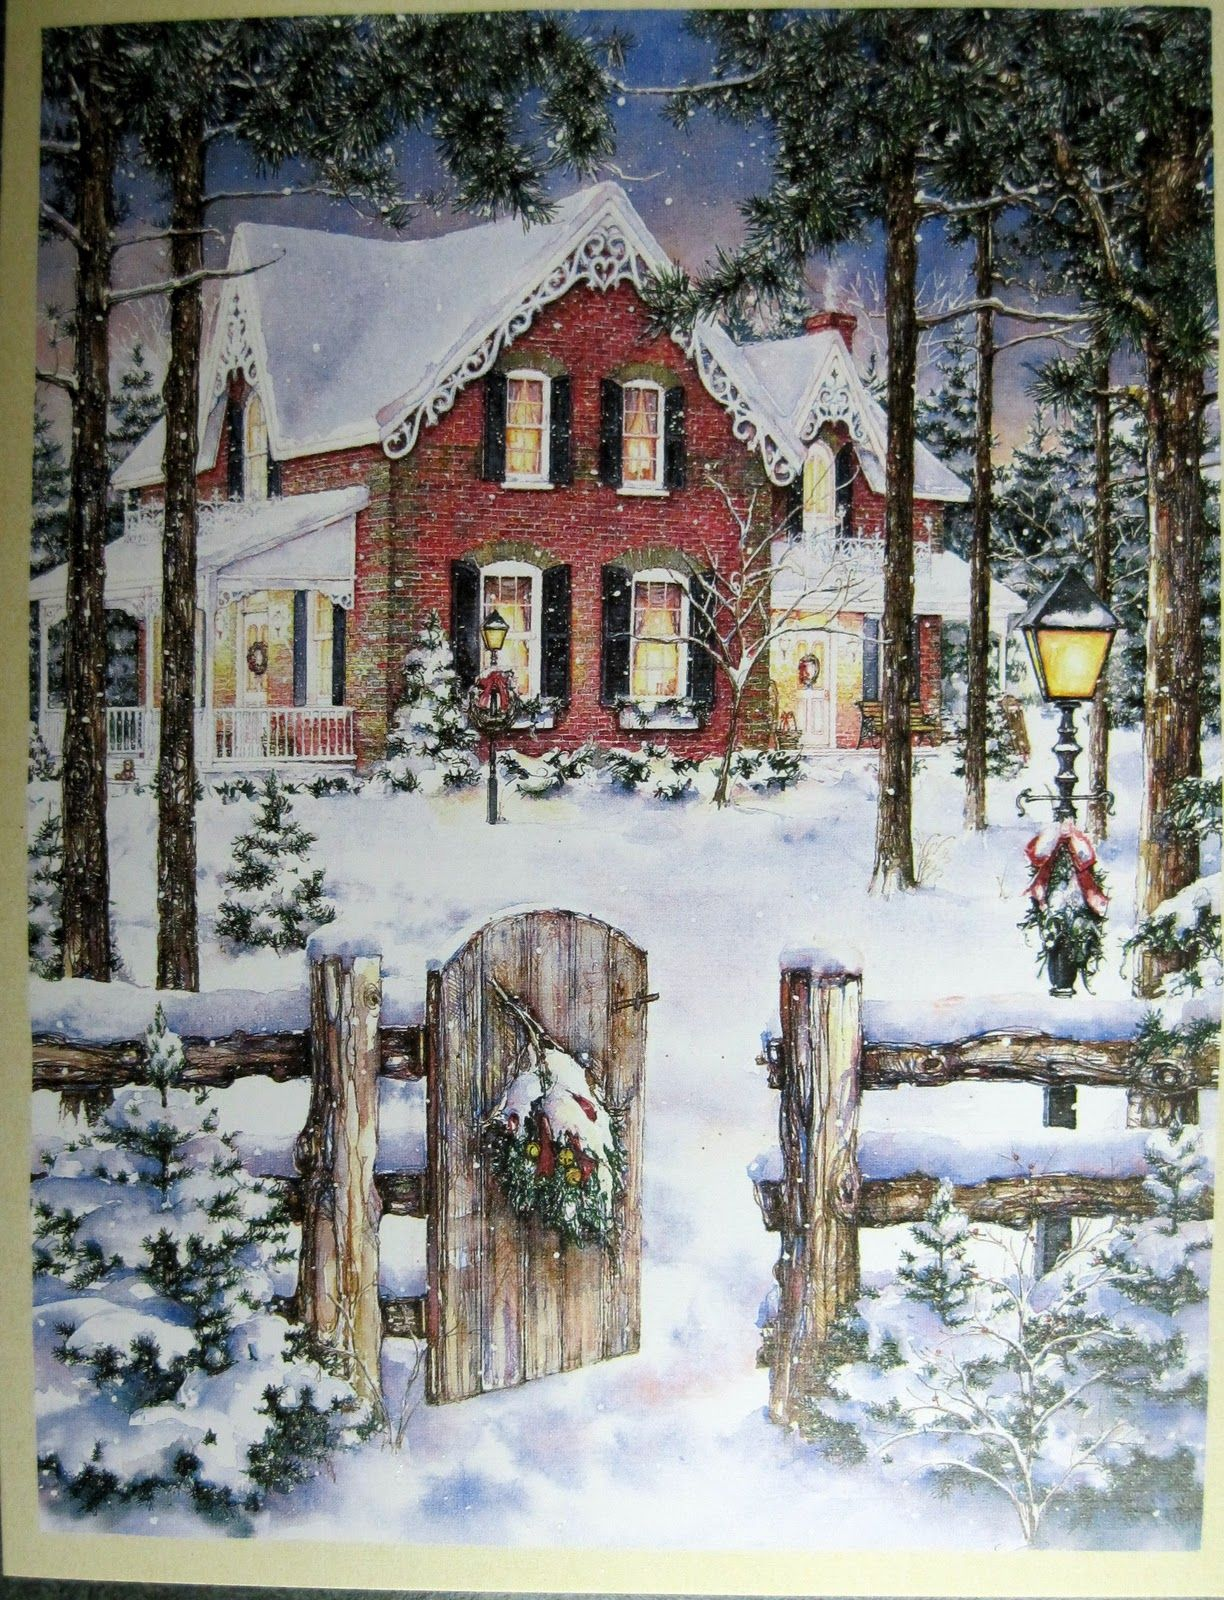 Lang Christmas Card. Perfect winter home setting. | The Most ...